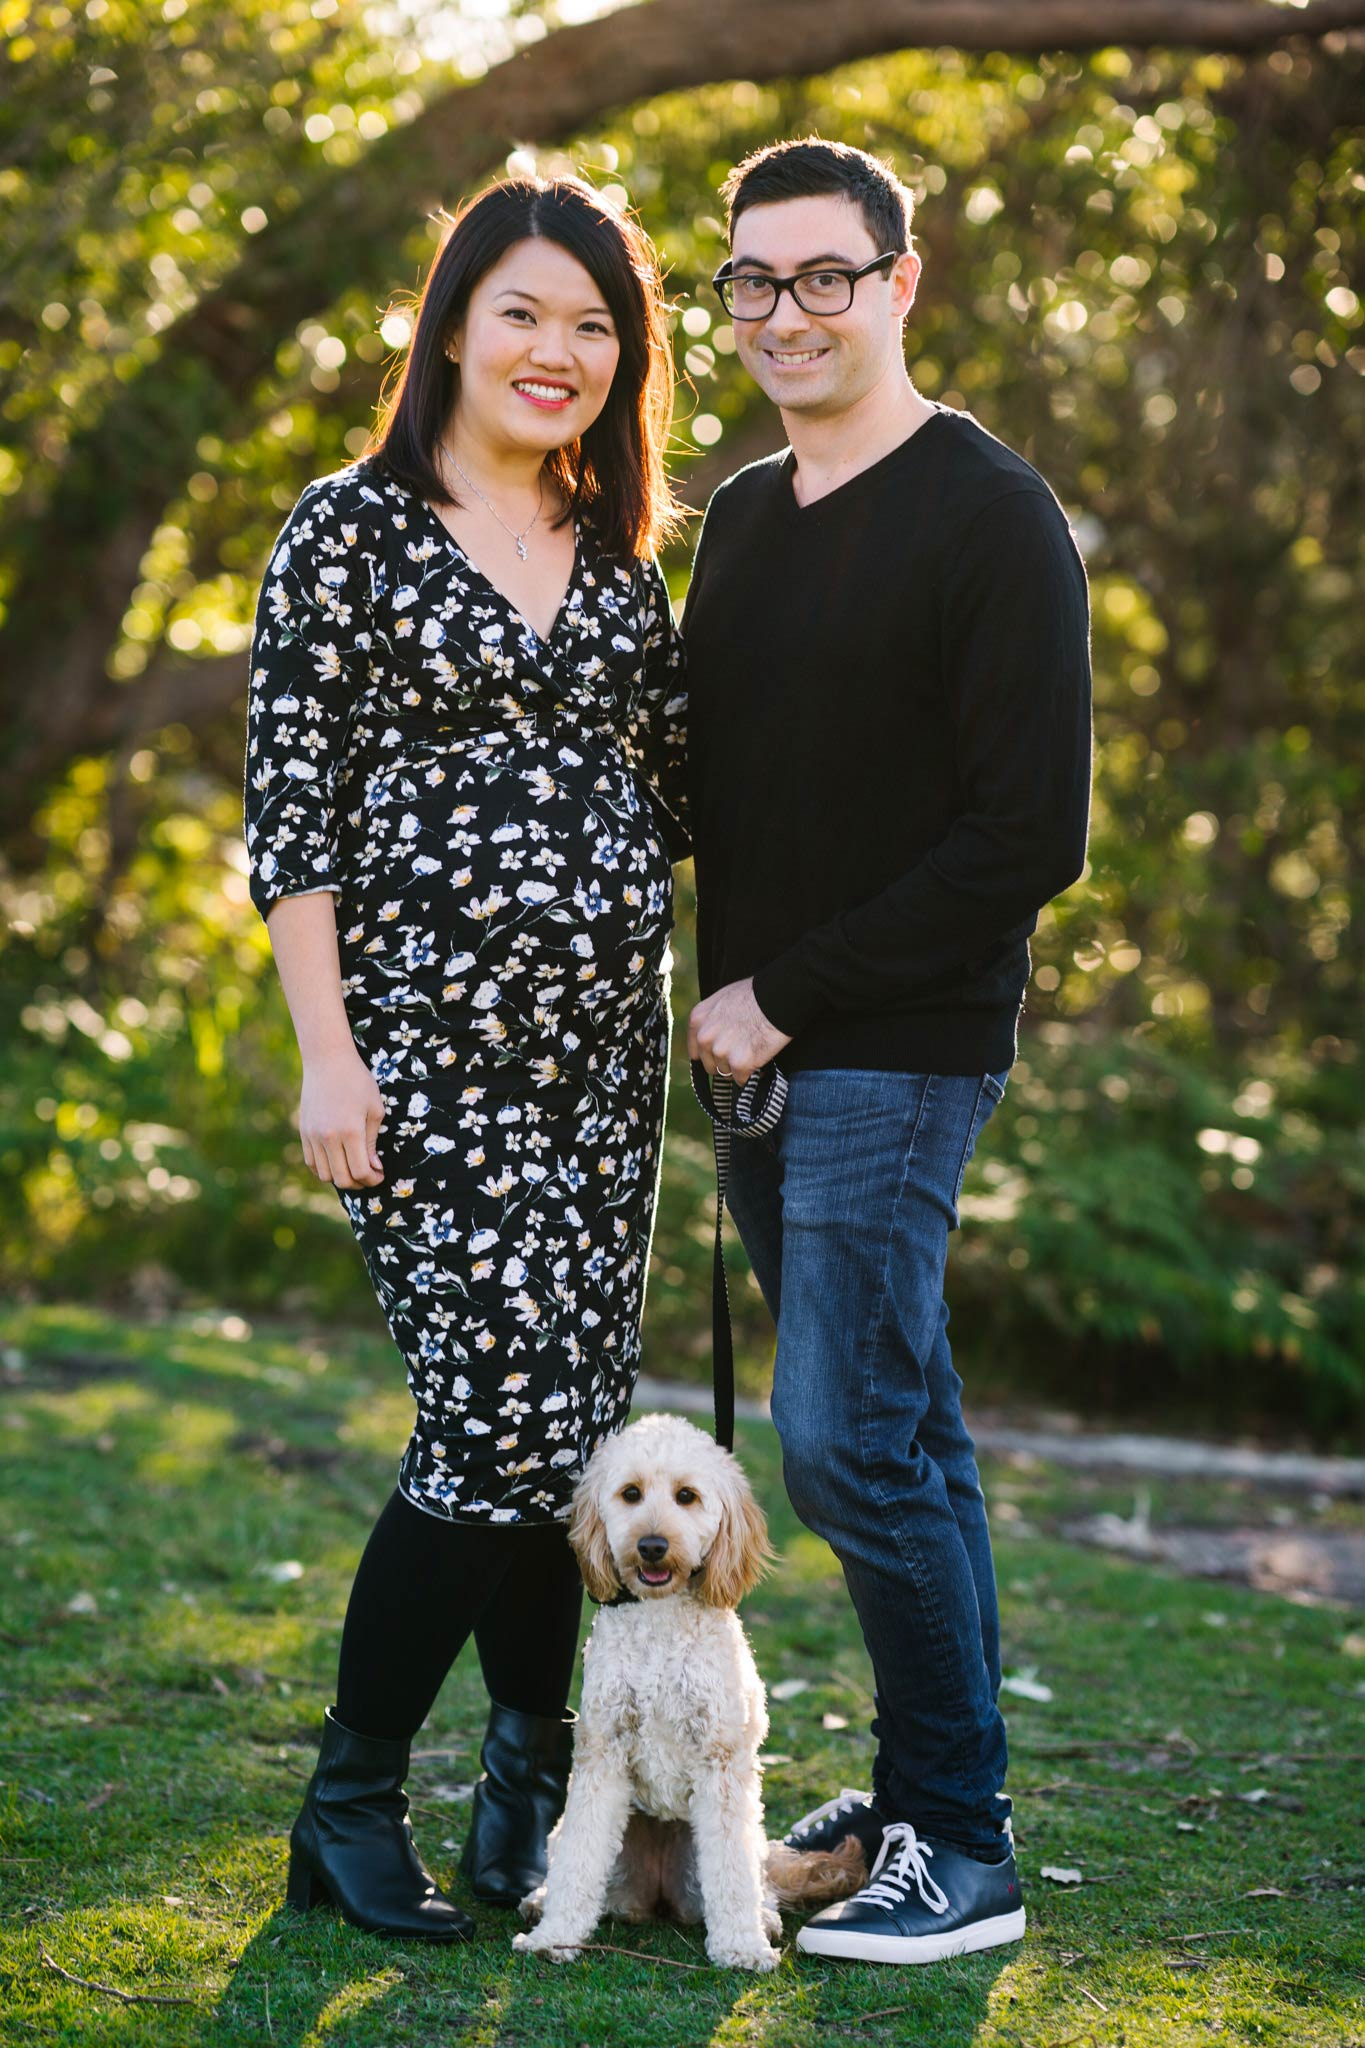 Pregnant couple posing with their poodle puppy